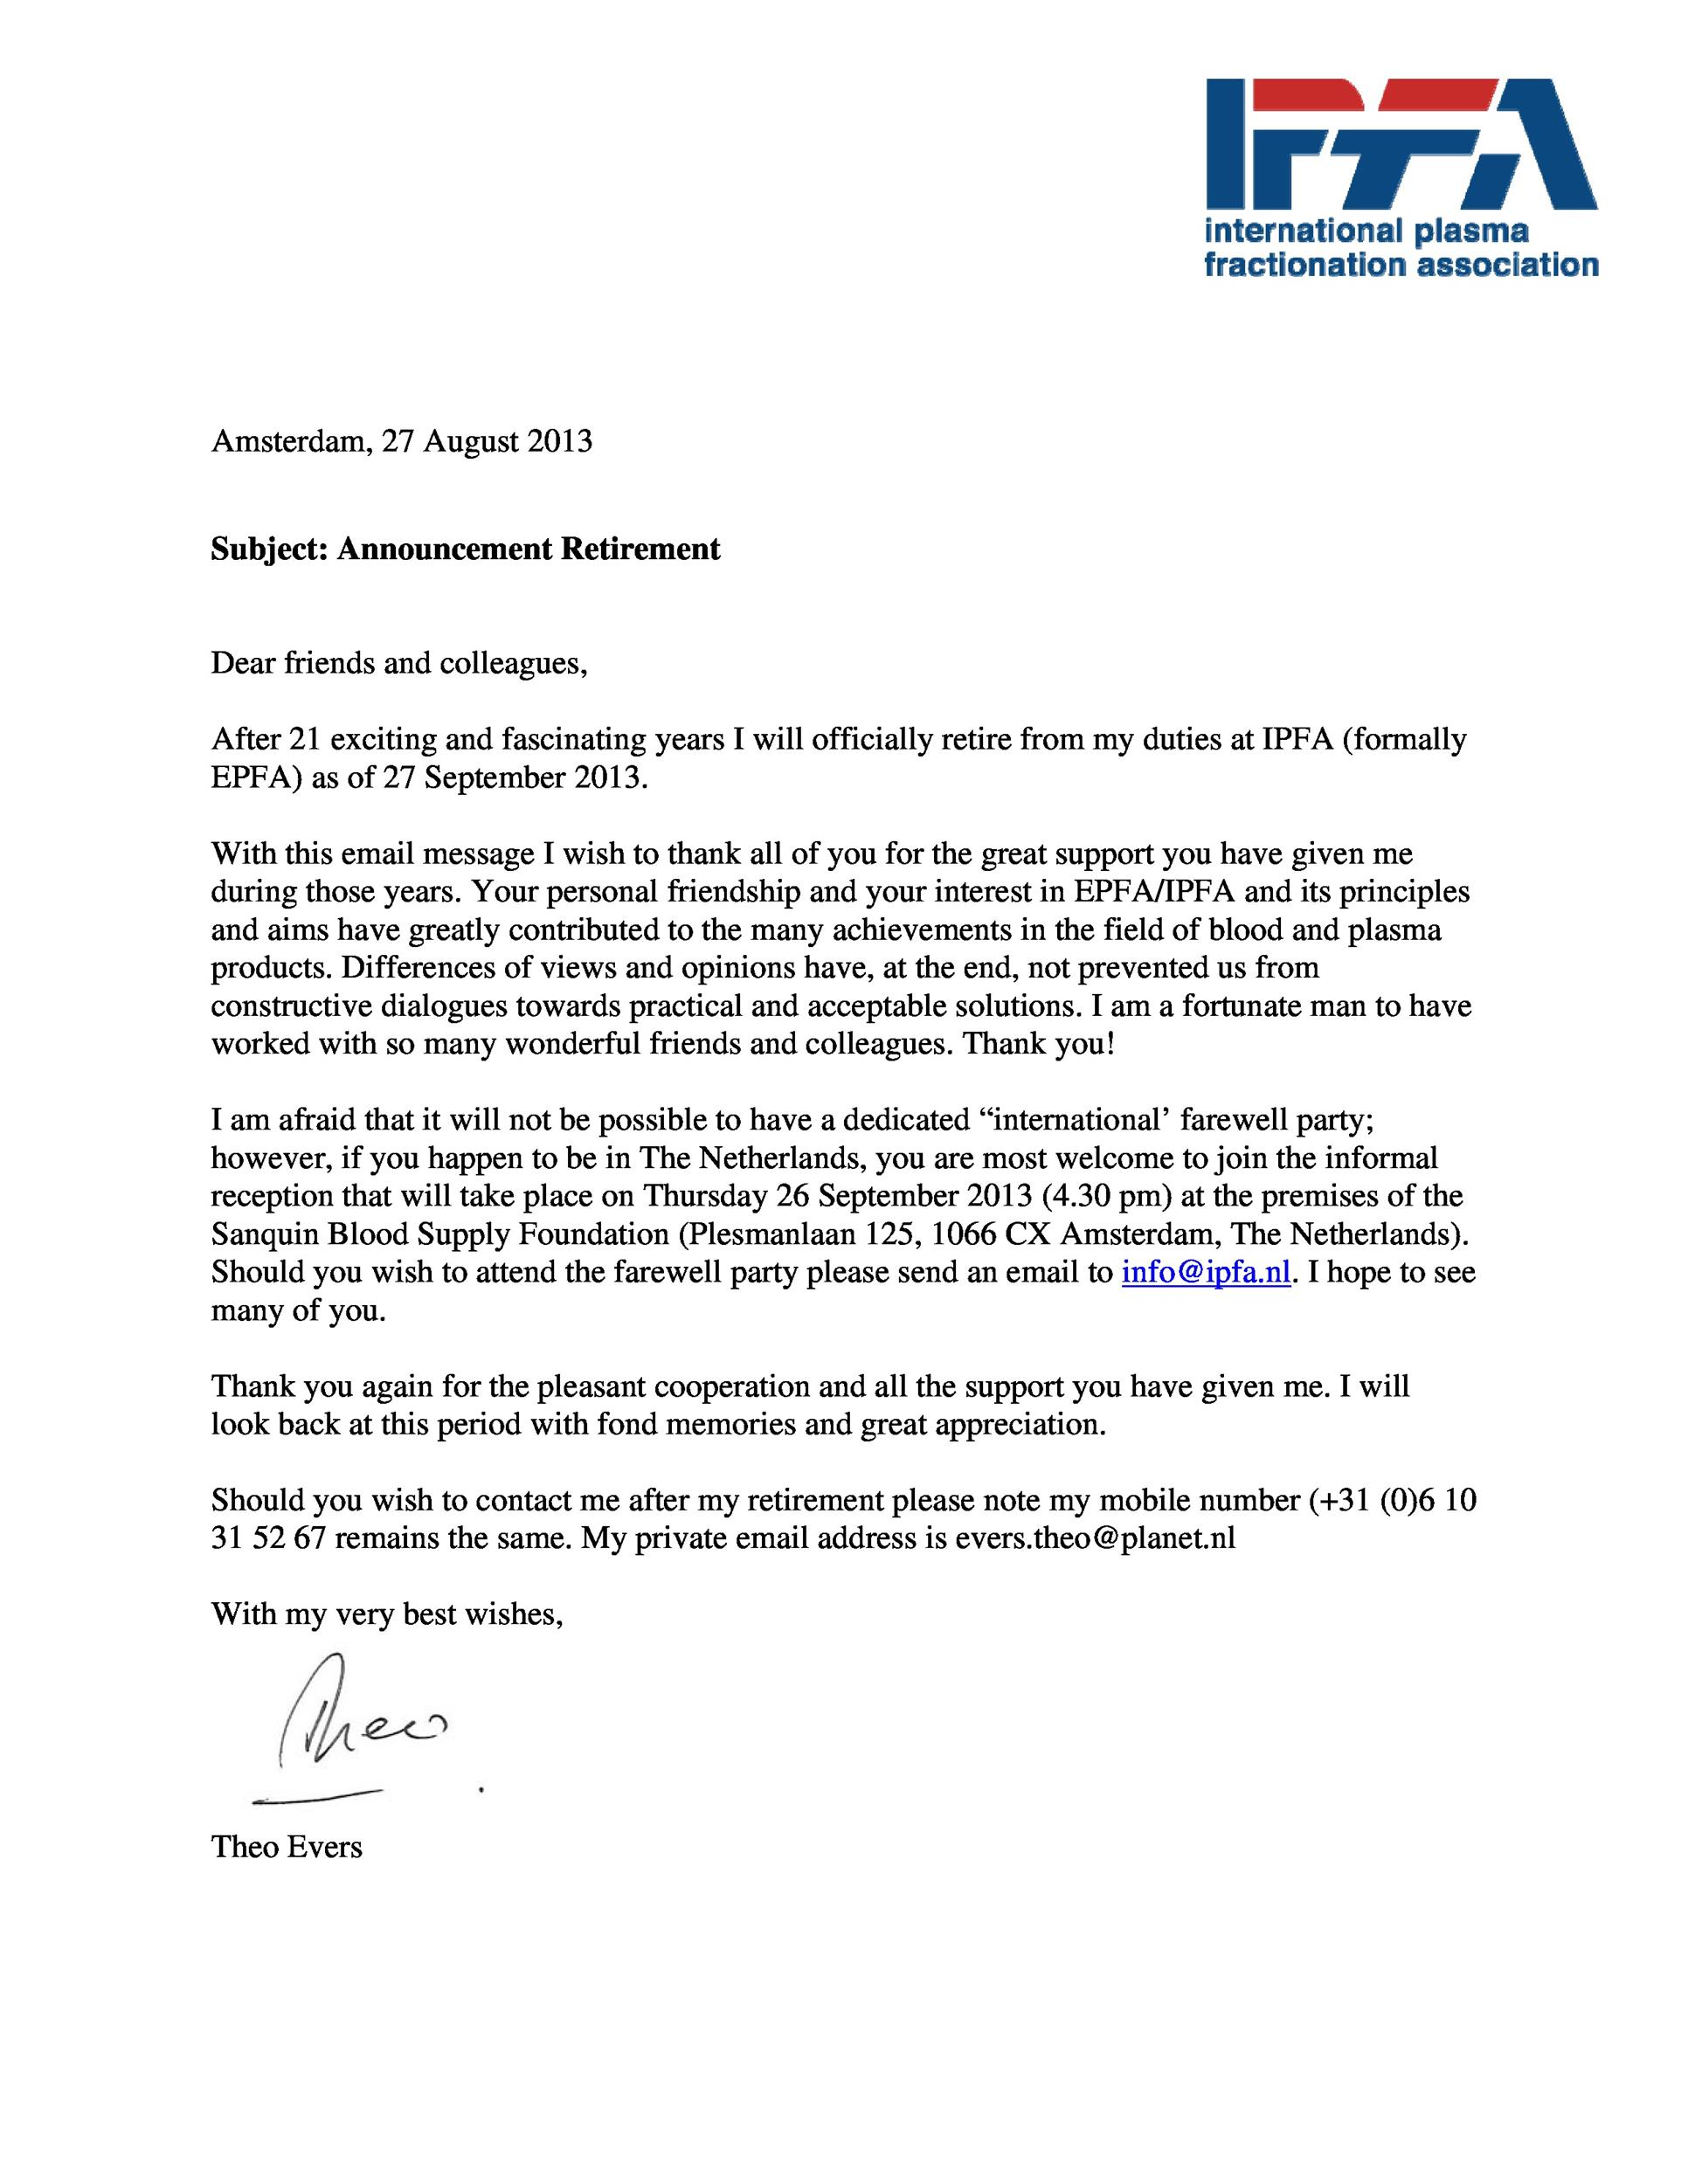 38 Professional Retirement Announcement Letters  Emails ᐅ Template Lab